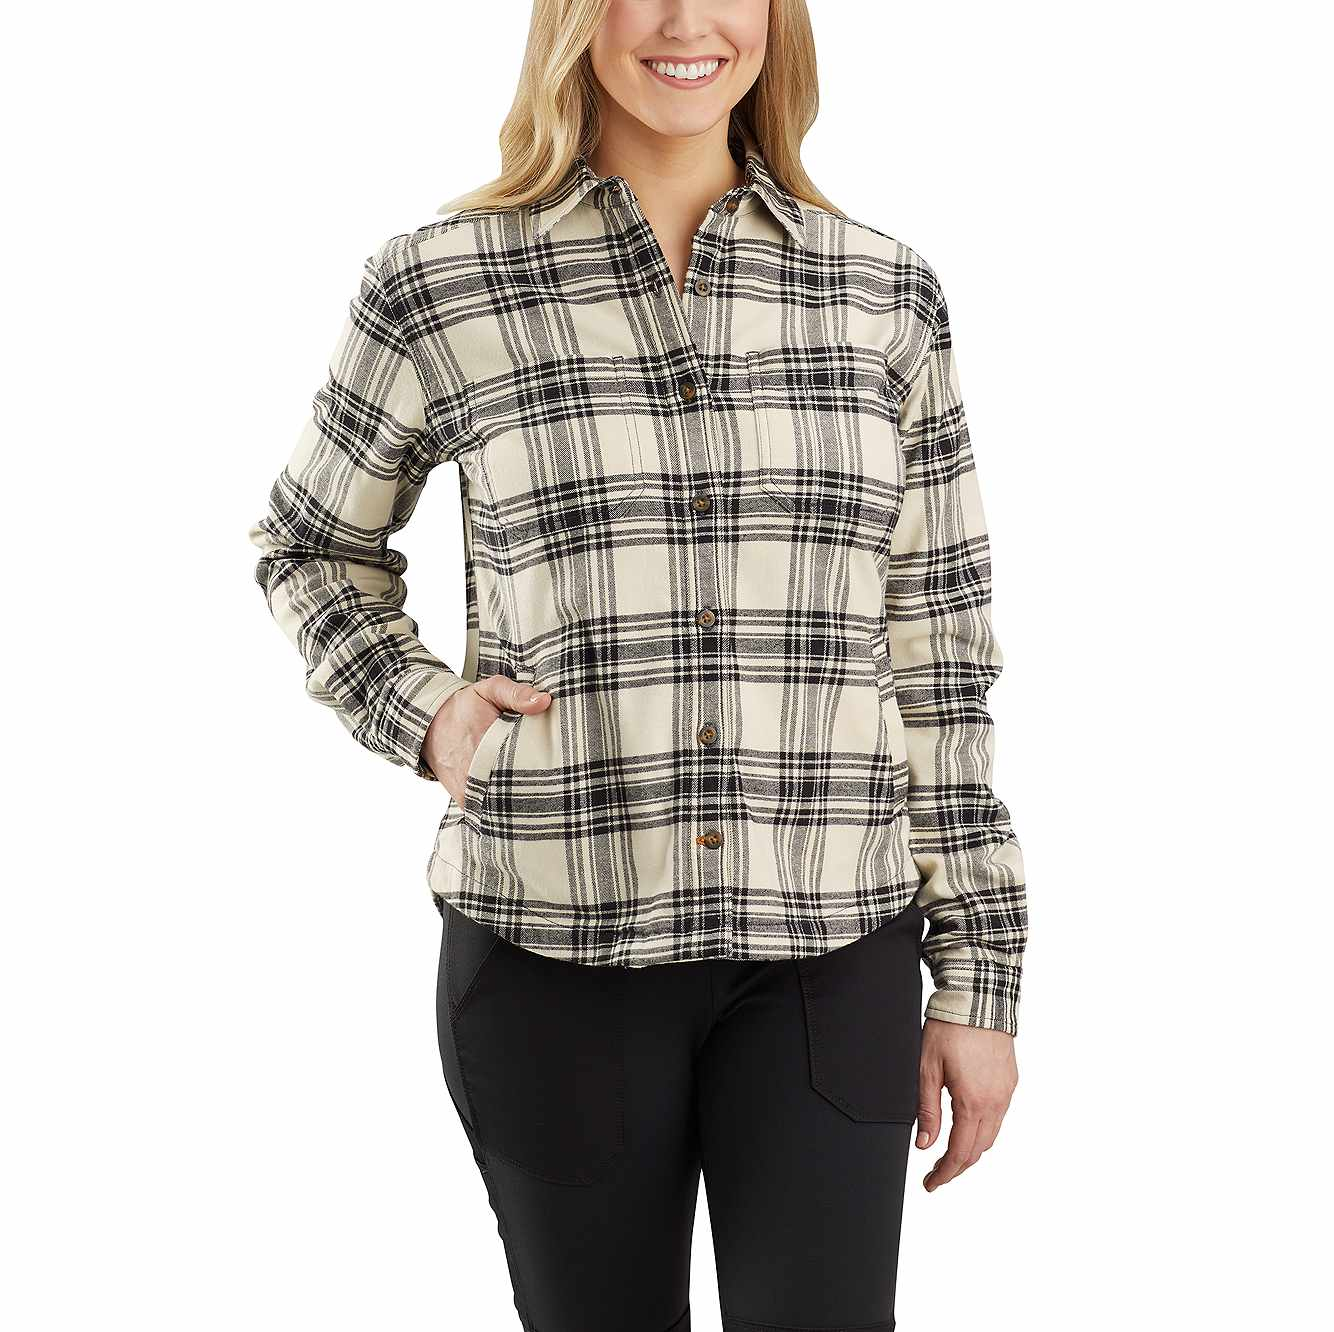 Picture of Carhartt® Rugged Flex® Relaxed Fit Flannel Fleece Lined Plaid Shirt in Oyster White